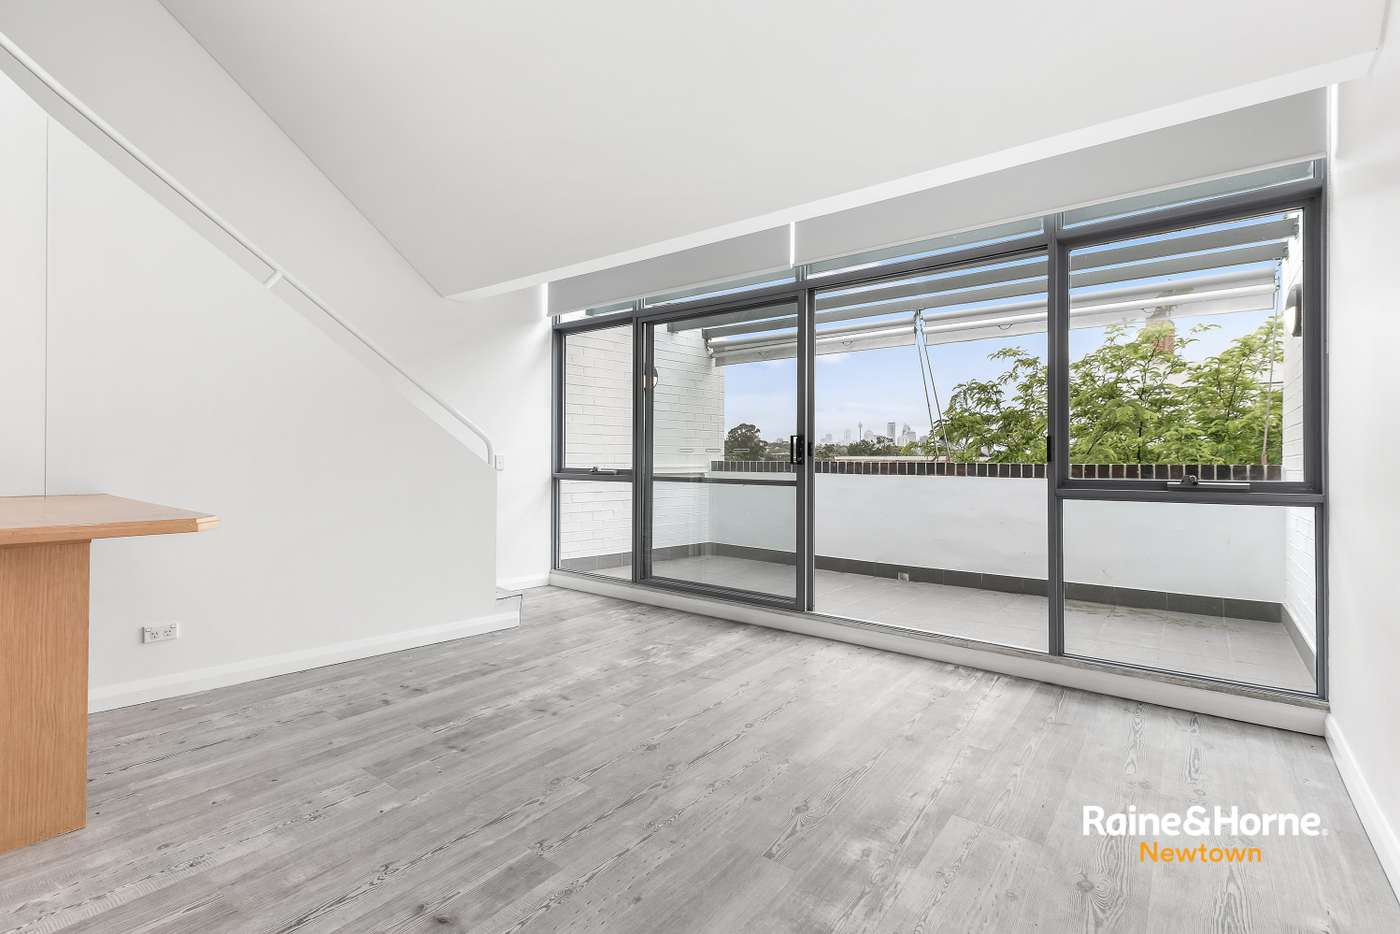 Main view of Homely apartment listing, 67/546 King Street, Newtown NSW 2042